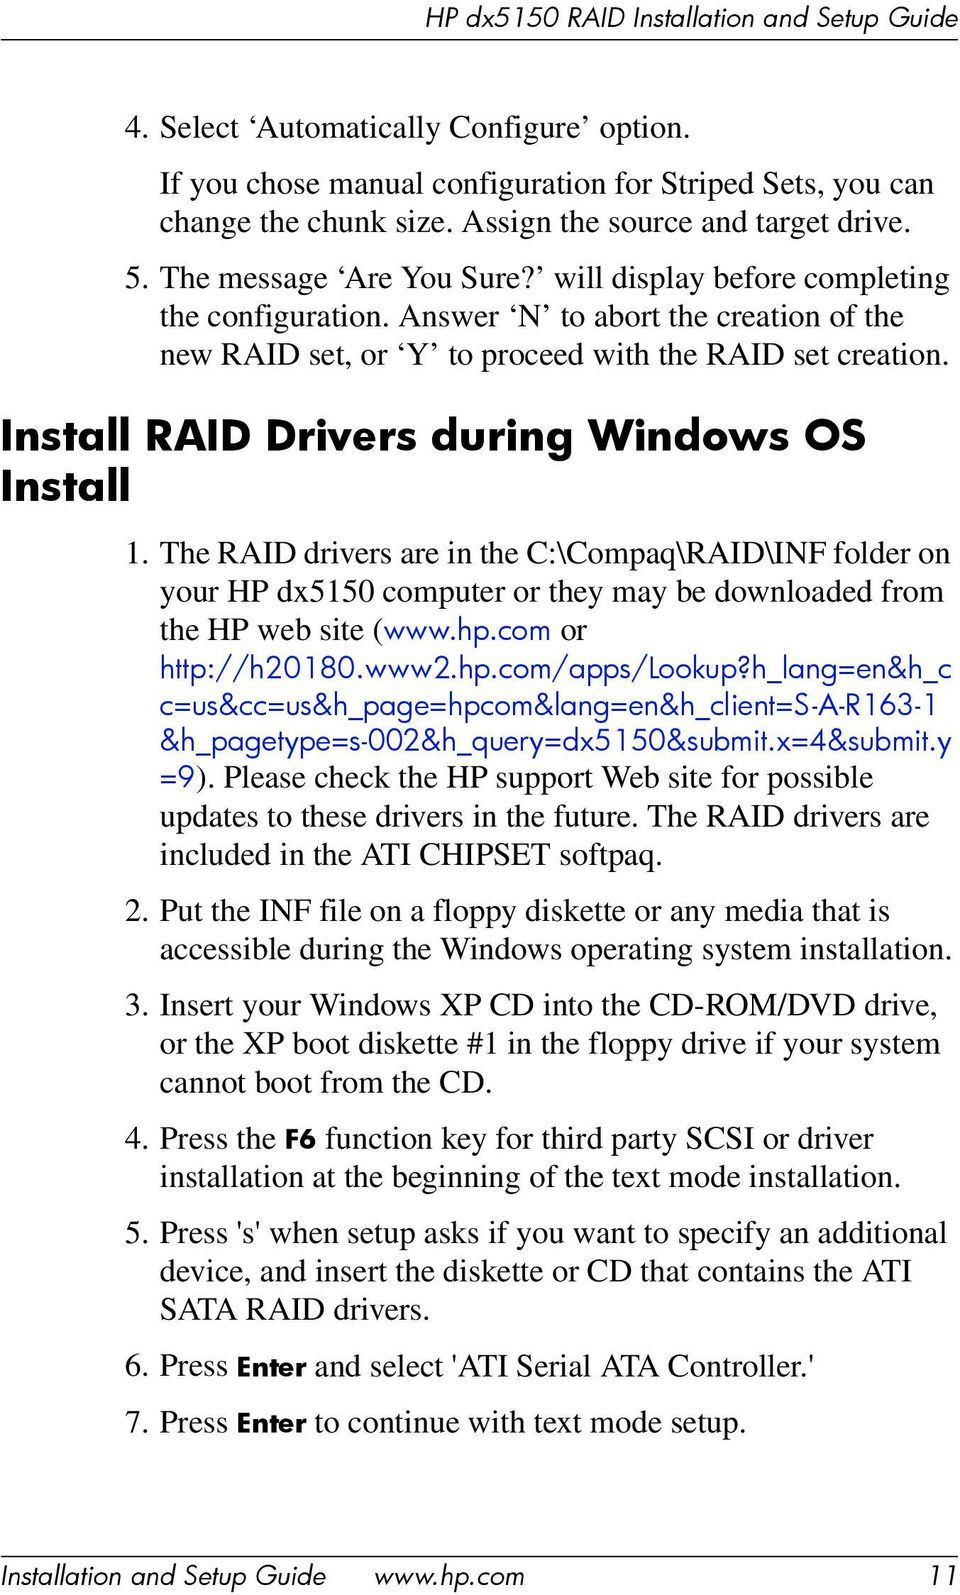 The RAID drivers are in the C:\Compaq\RAID\INF folder on your HP dx5150 computer or they may be downloaded from the HP web site (www.hp.com or http://h20180.www2.hp.com/apps/lookup?